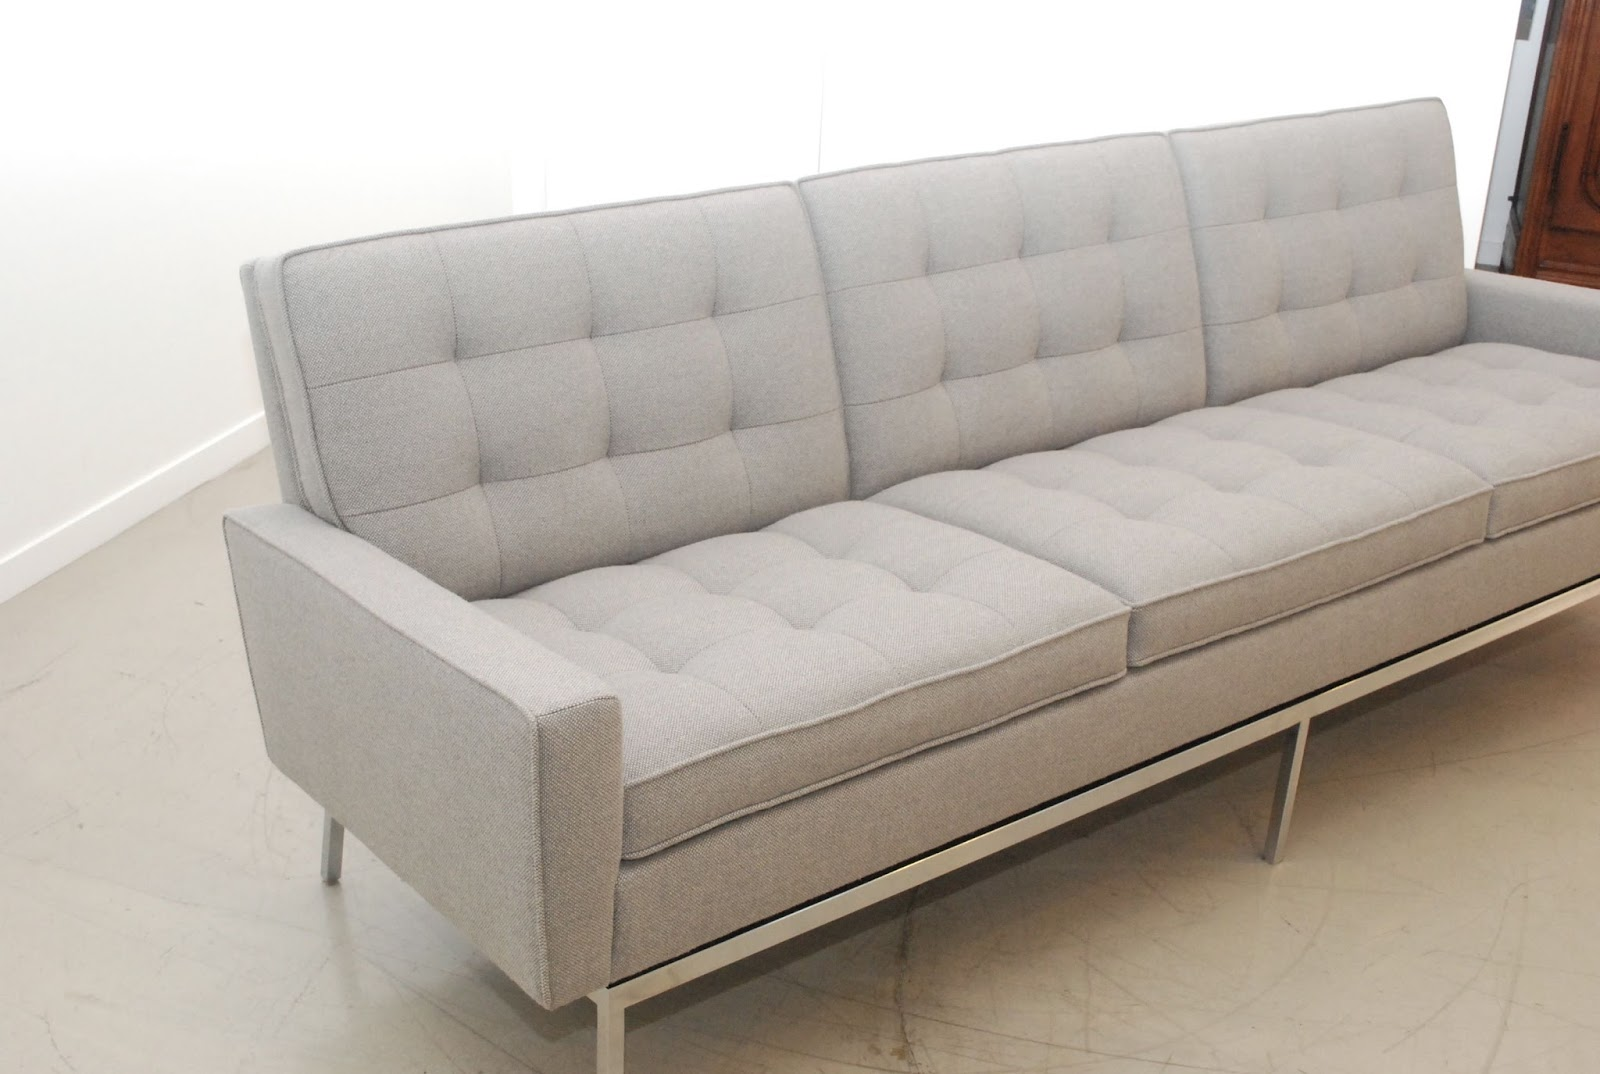 Classic Design Before After Vintage Florence Knoll Sofa